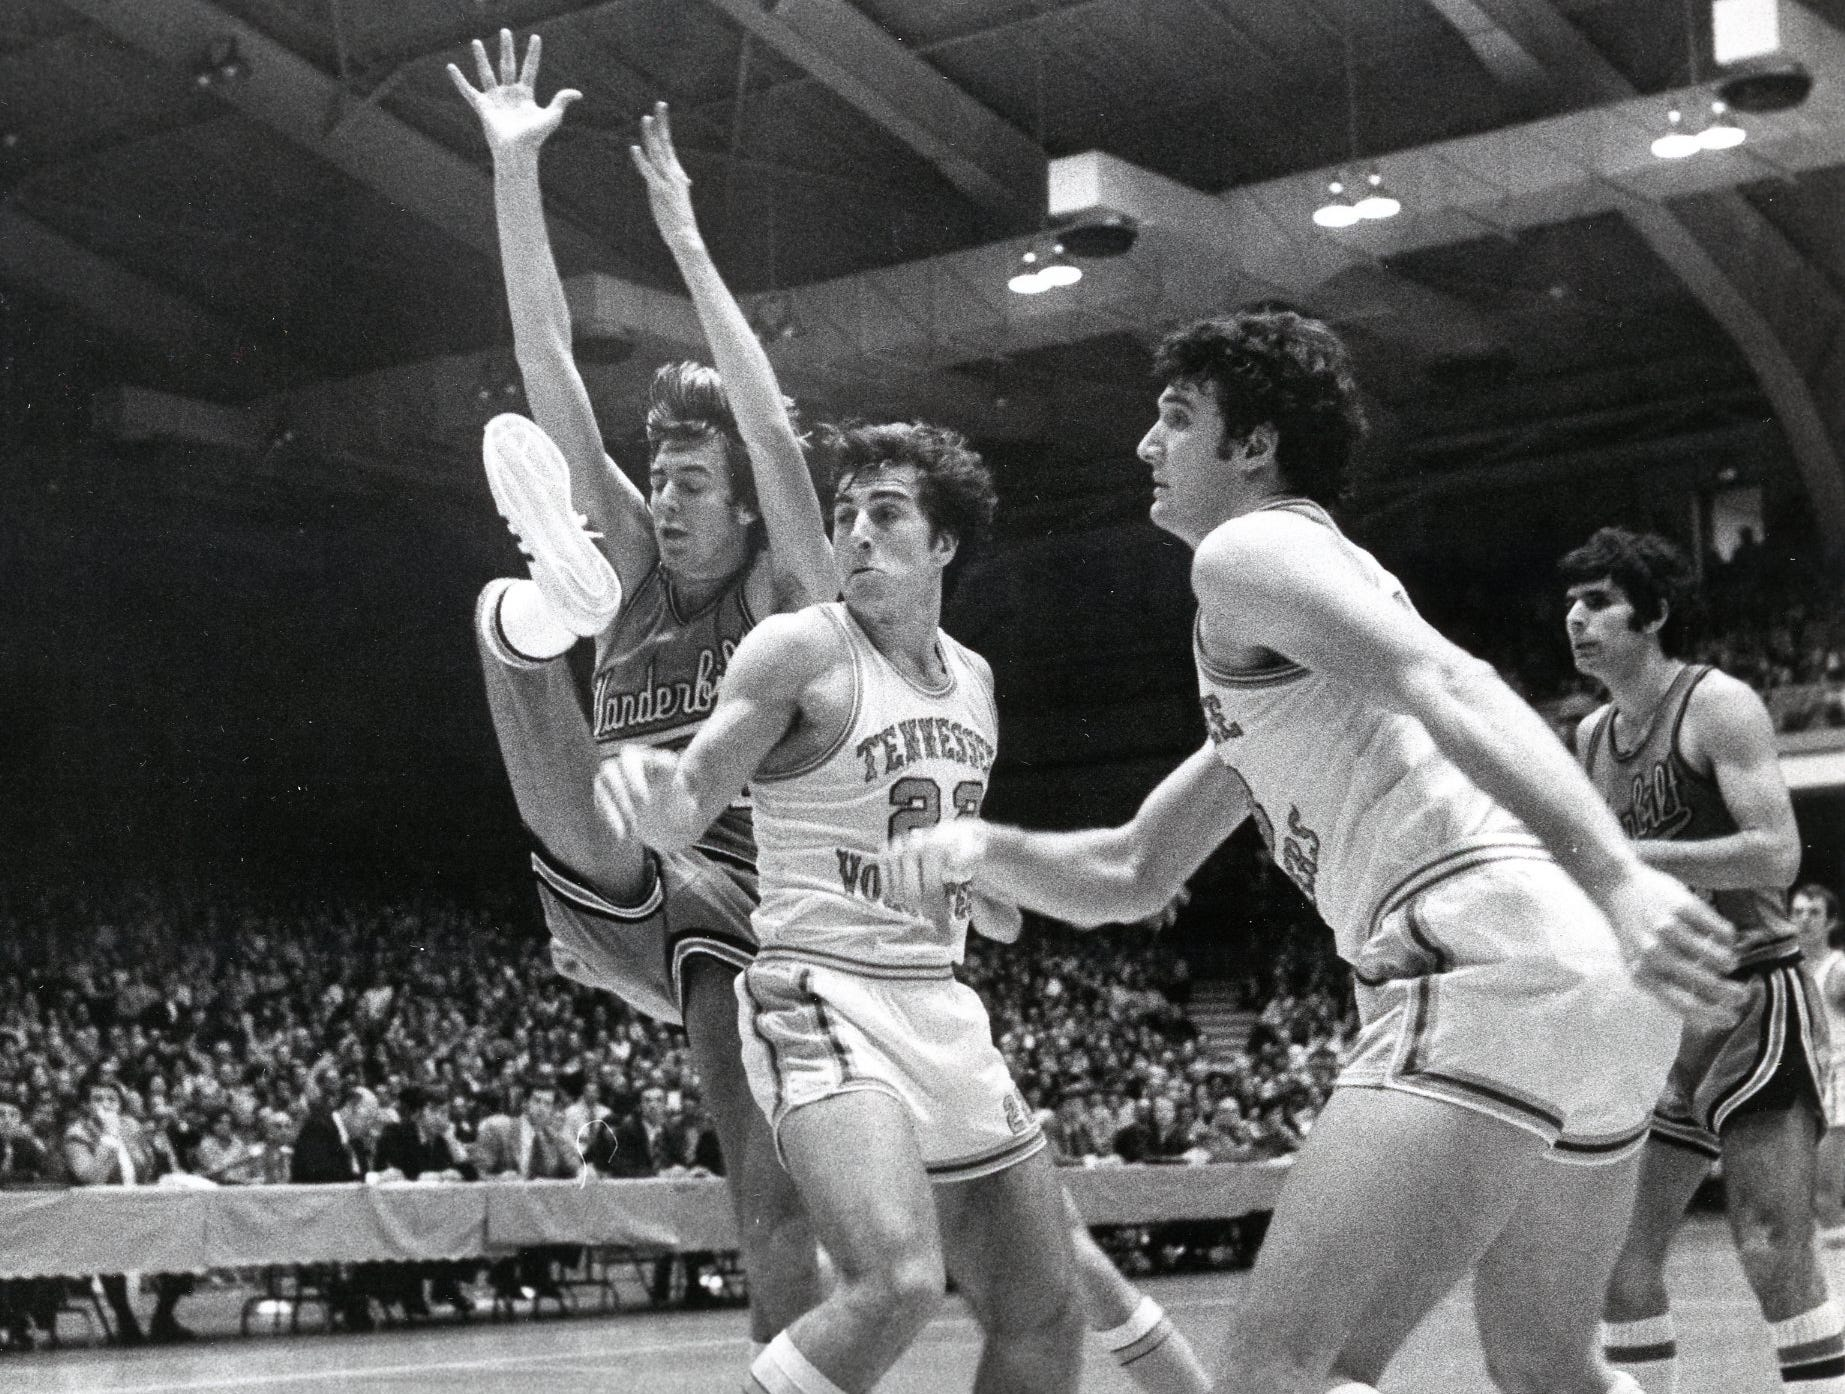 Ernie Grunfeld of UT, center, reacts as a Vanderbilt player lets go of the basketball in this January, 1974 game.